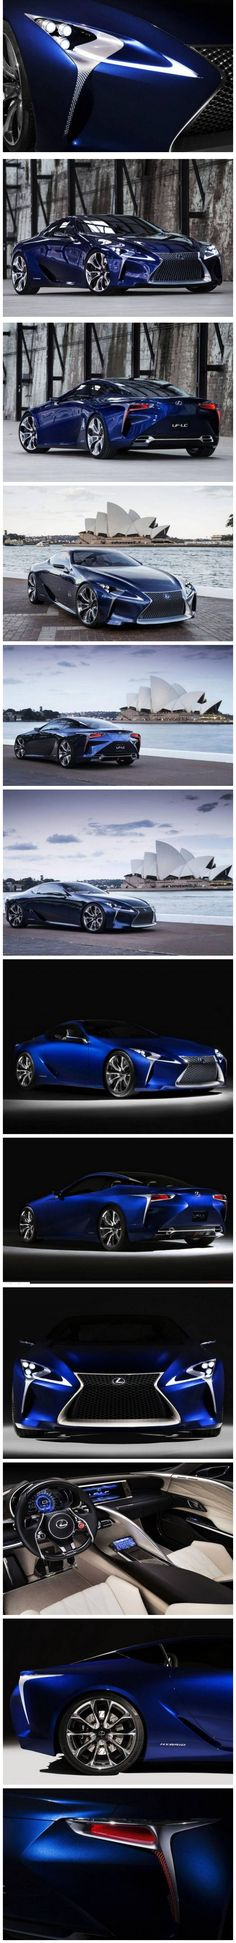 "'♂ Blue car The Lexus LF-LC Concept"" - OK...this one had me at ""hello"" with the color! I am absolutely ""taken"" by this ""blue""...but, Lexus has certainly done it again with a beautifully done concept vehicle we HOPE will soon be on the showroom floors! I'd truly LOVE to own this one! -Dee Blackman, LDJ Auto Body, http://www.ldjautobody.com/european-luxury-cars/ :)"